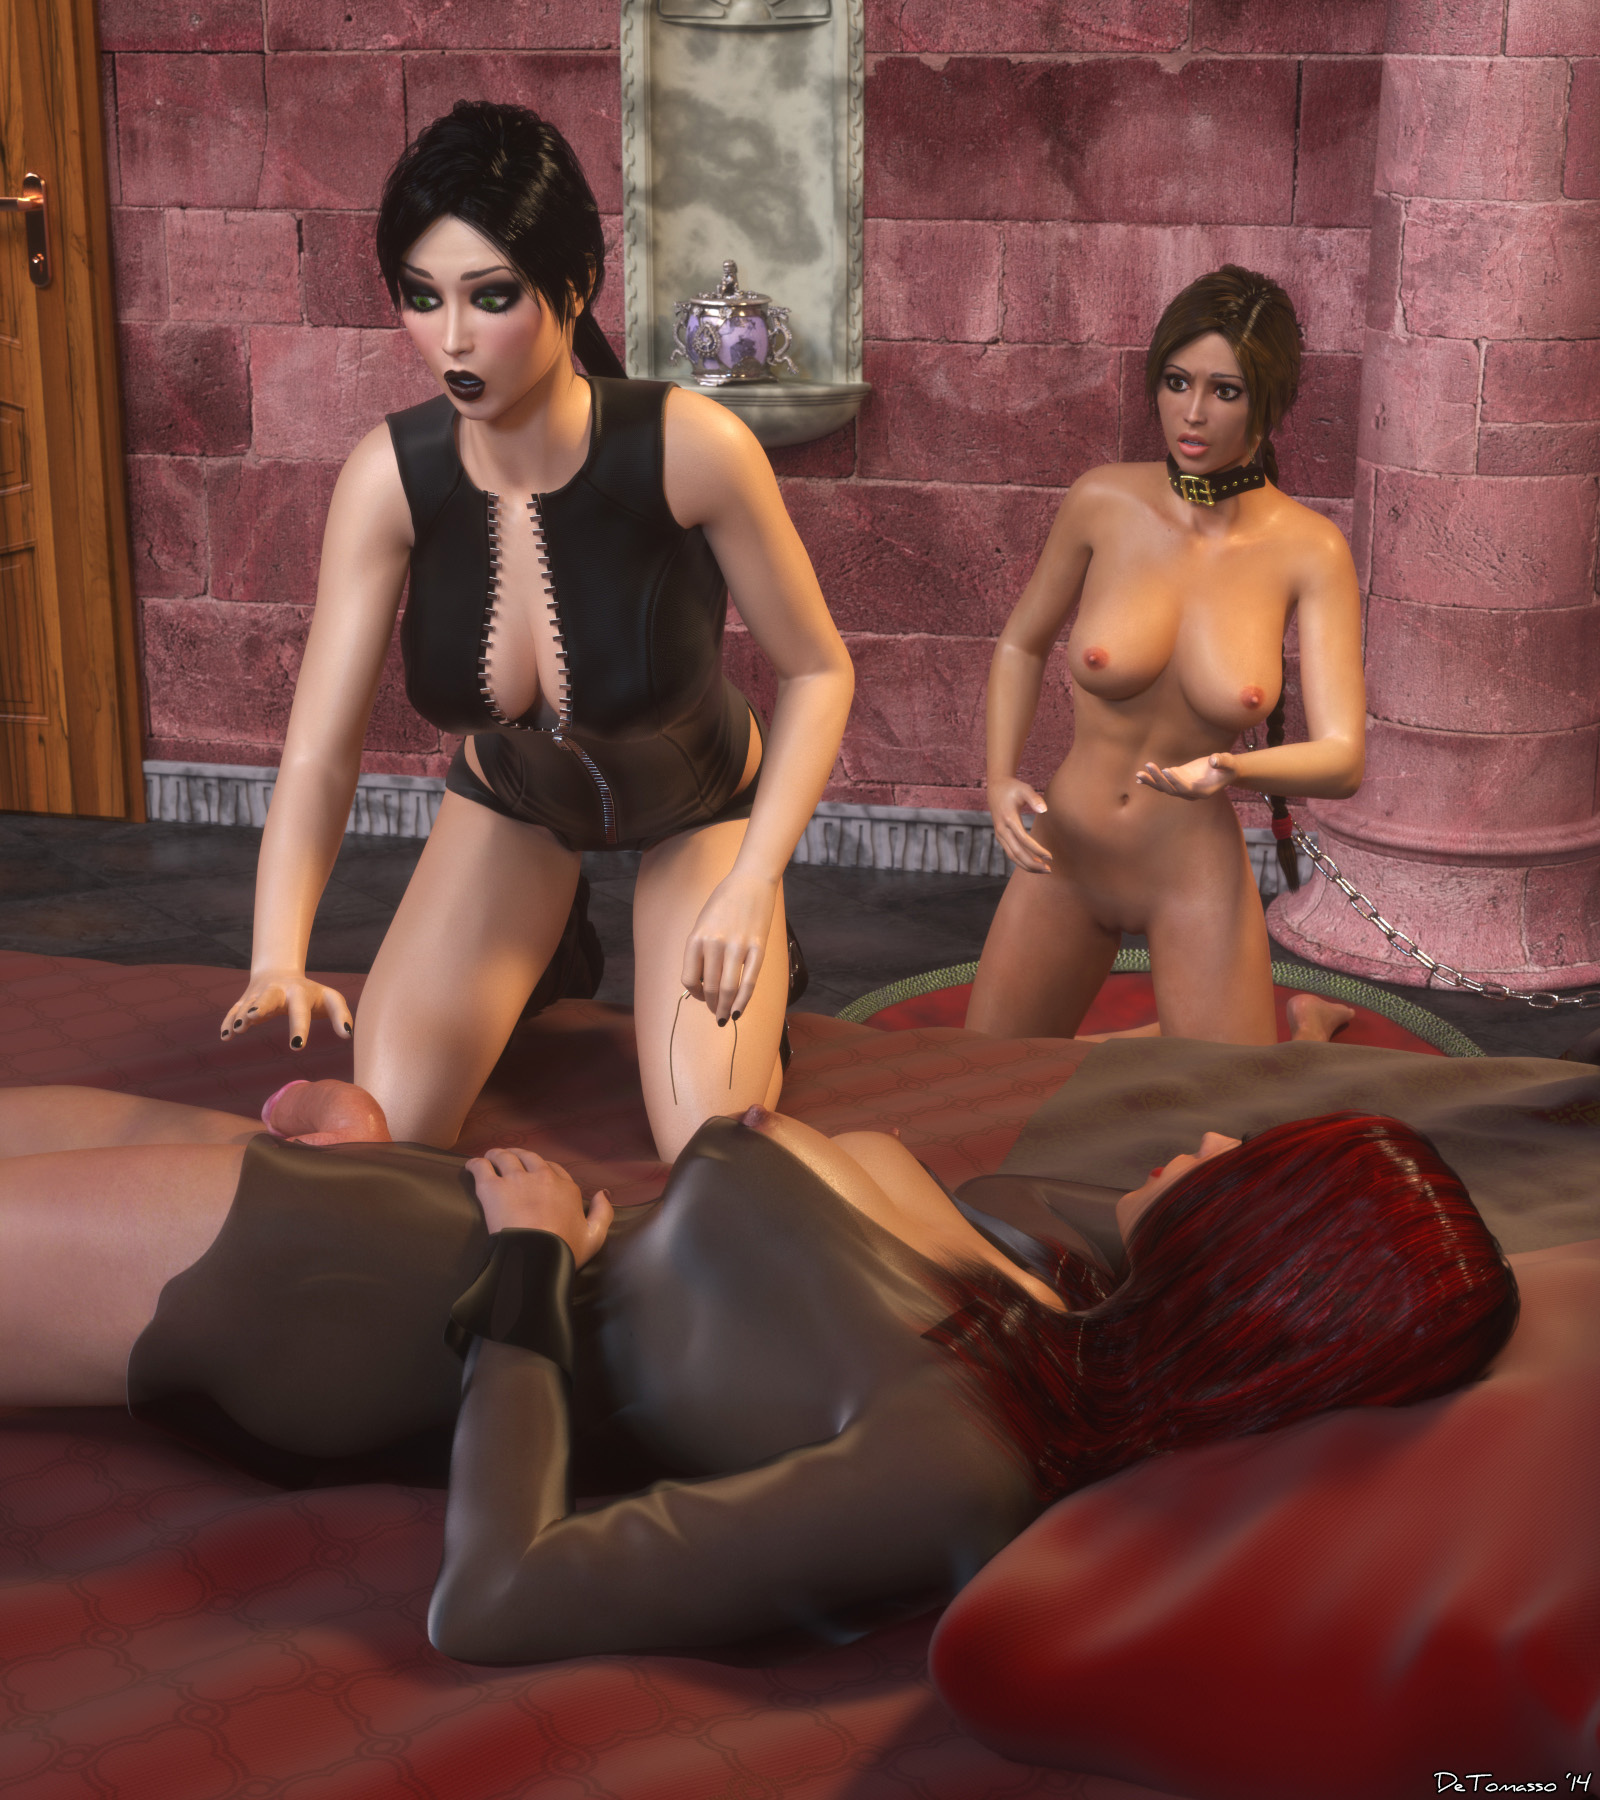 Tomb raider 3d free sex bilder fucks toons